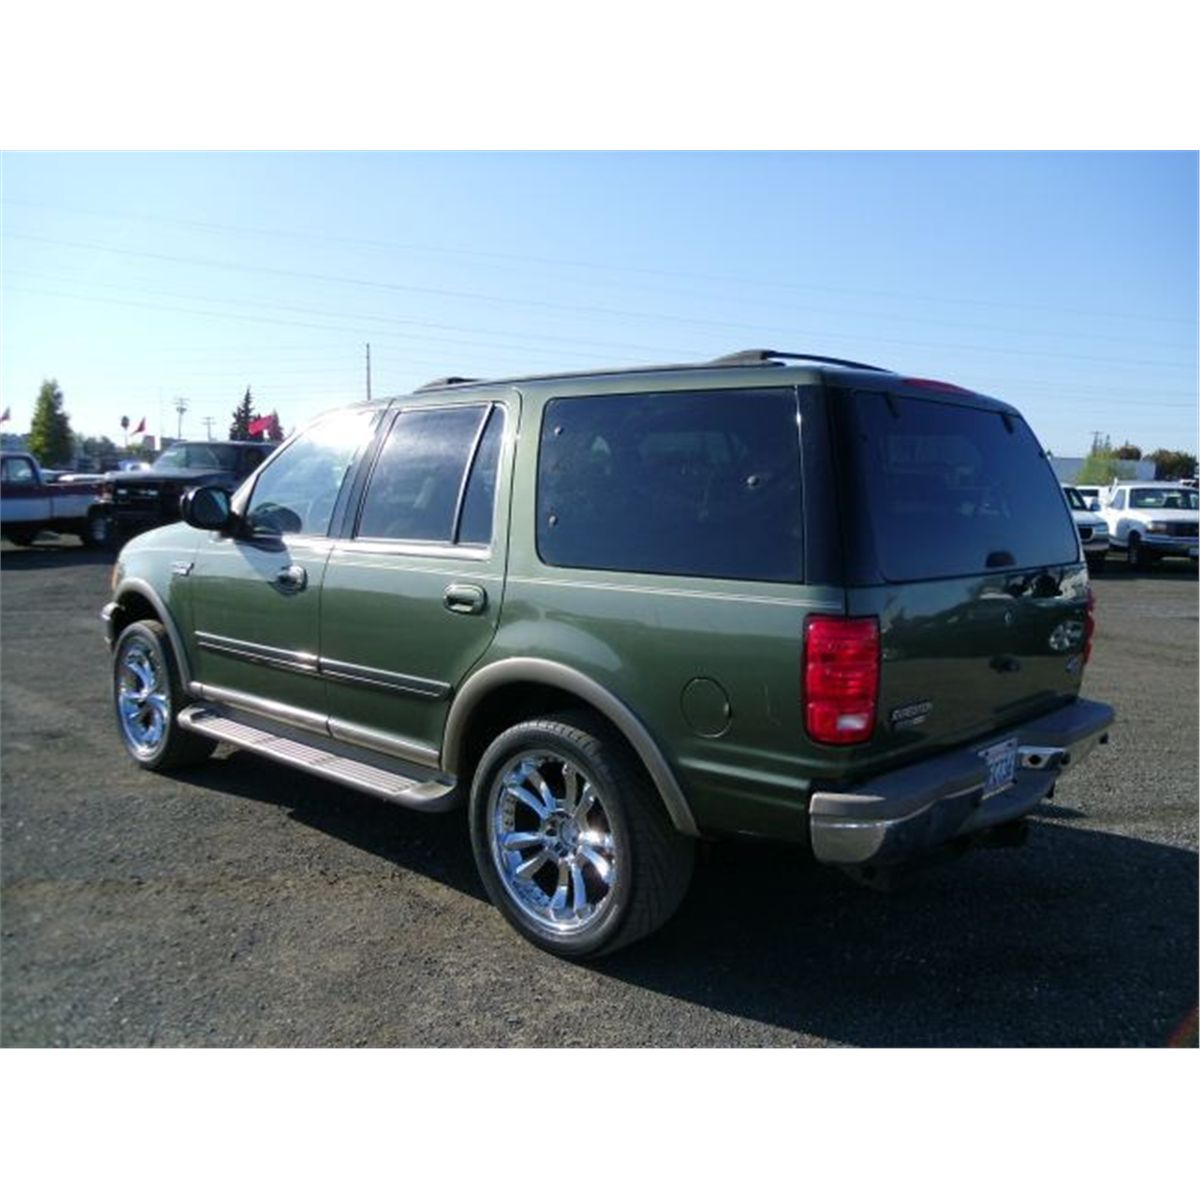 2002 Ford Expedition For Sale: 2000 Ford Expedition Eddie Bauer Edition 4x4 SUV